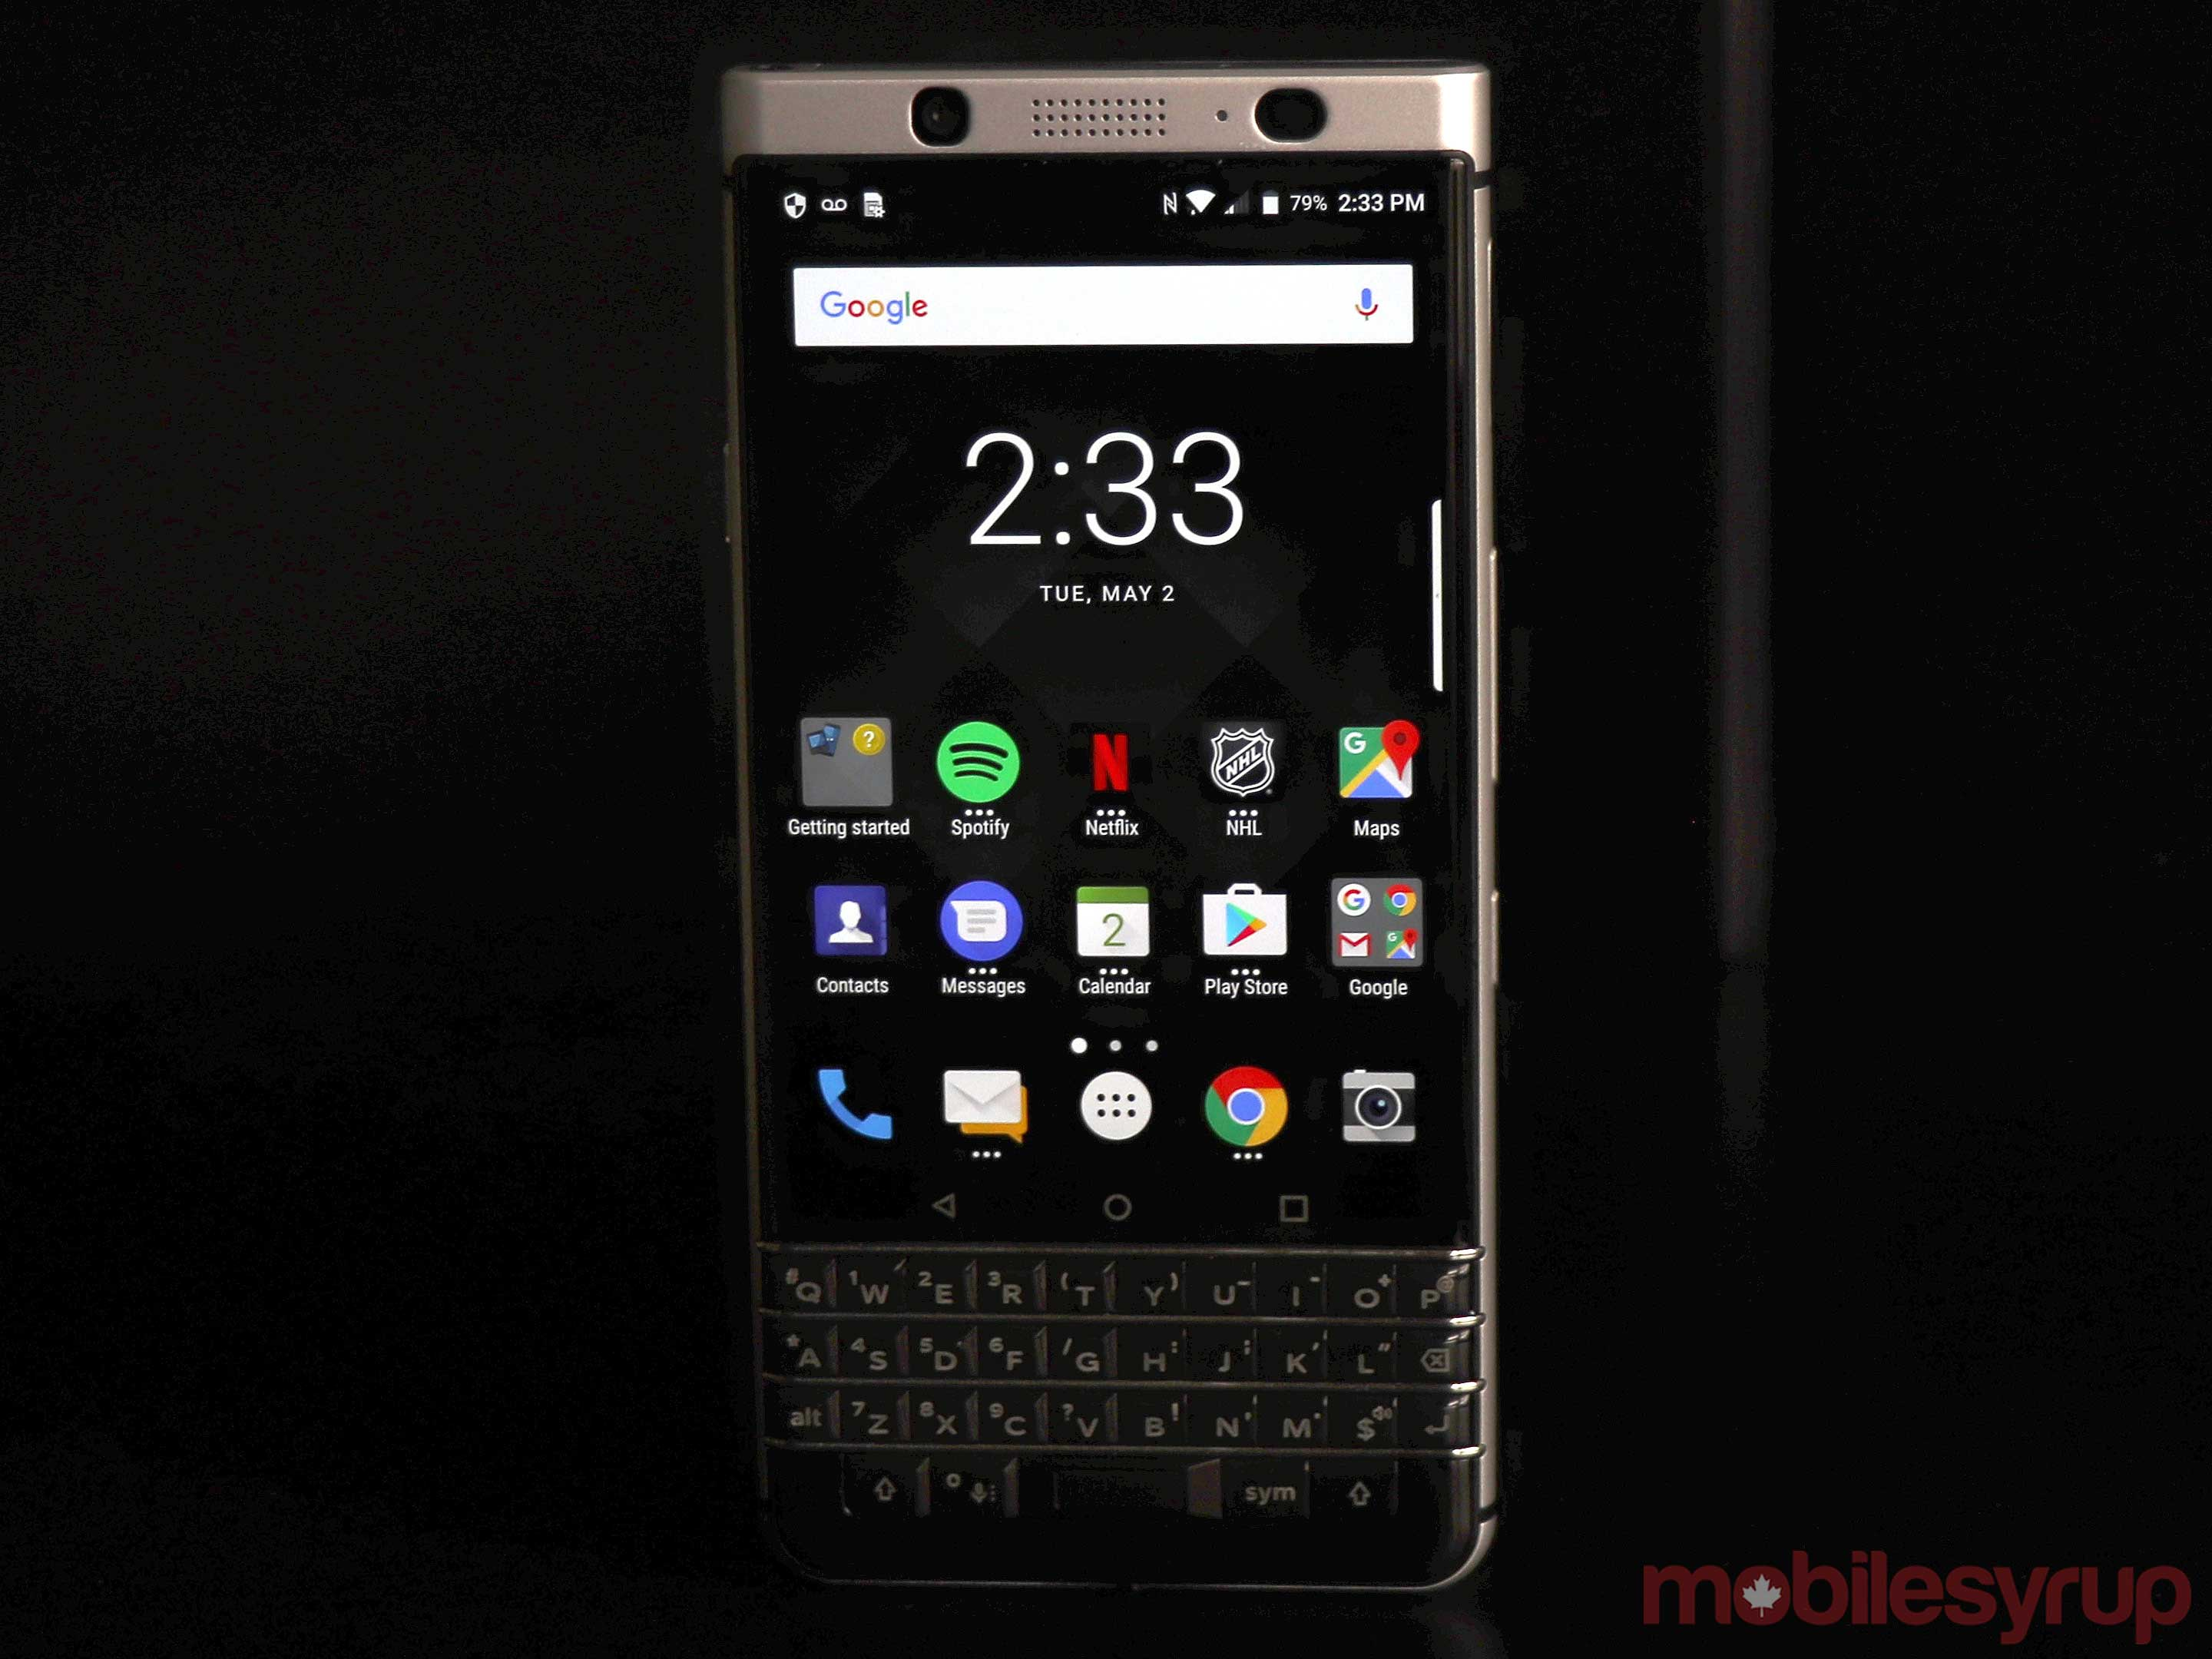 Blackberry keyone main screen